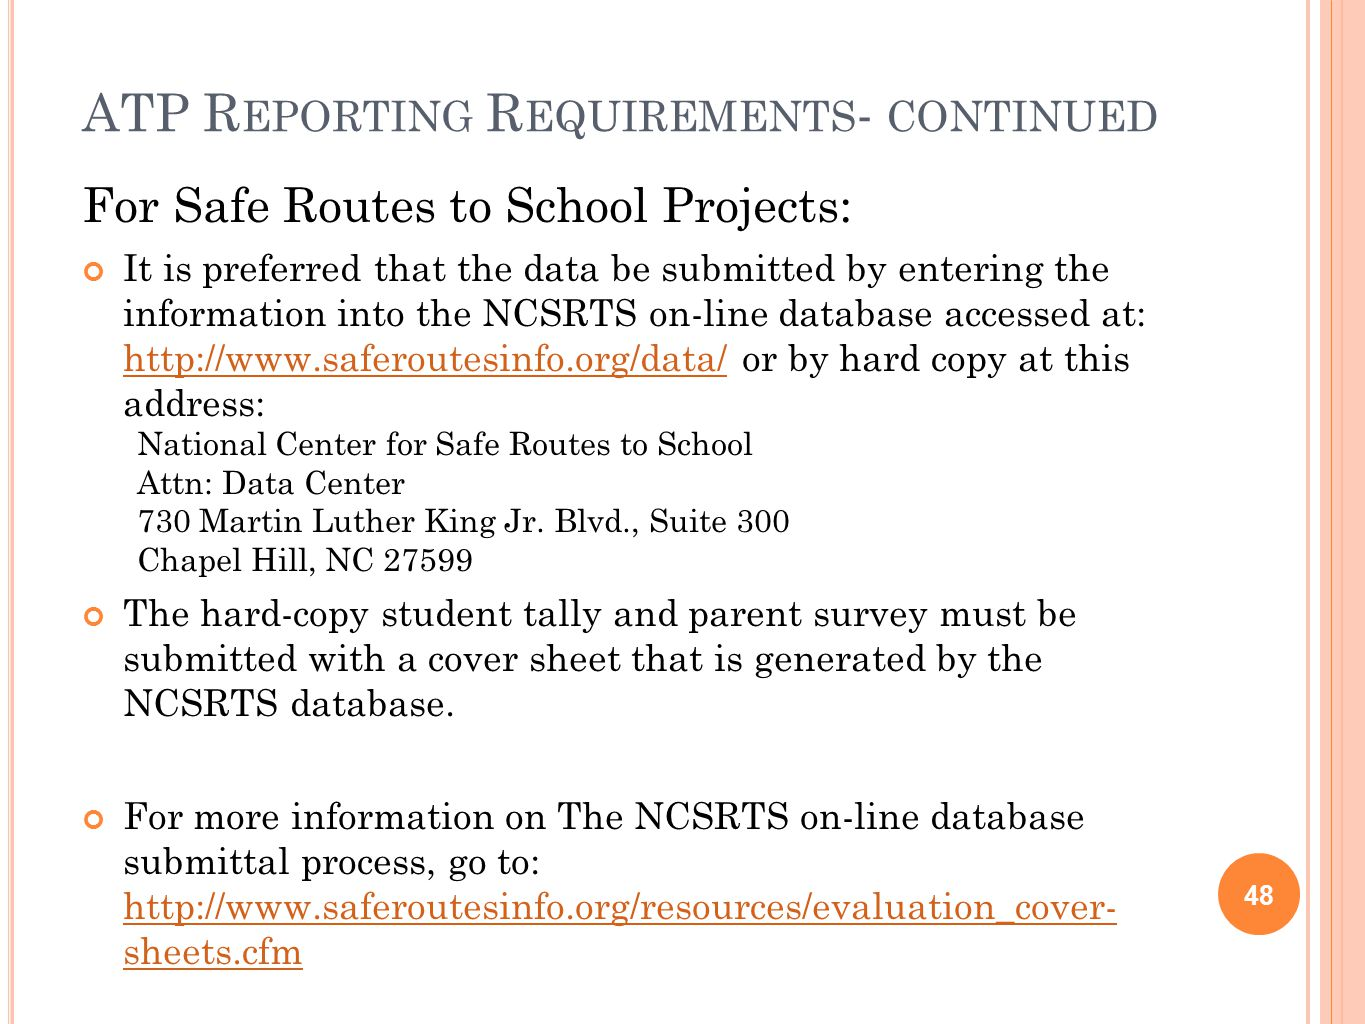 ATP R EPORTING R EQUIREMENTS - CONTINUED 48 For Safe Routes to School Projects: It is preferred that the data be submitted by entering the information into the NCSRTS on-line database accessed at: http://www.saferoutesinfo.org/data/ or by hard copy at this address: http://www.saferoutesinfo.org/data/ National Center for Safe Routes to School Attn: Data Center 730 Martin Luther King Jr.